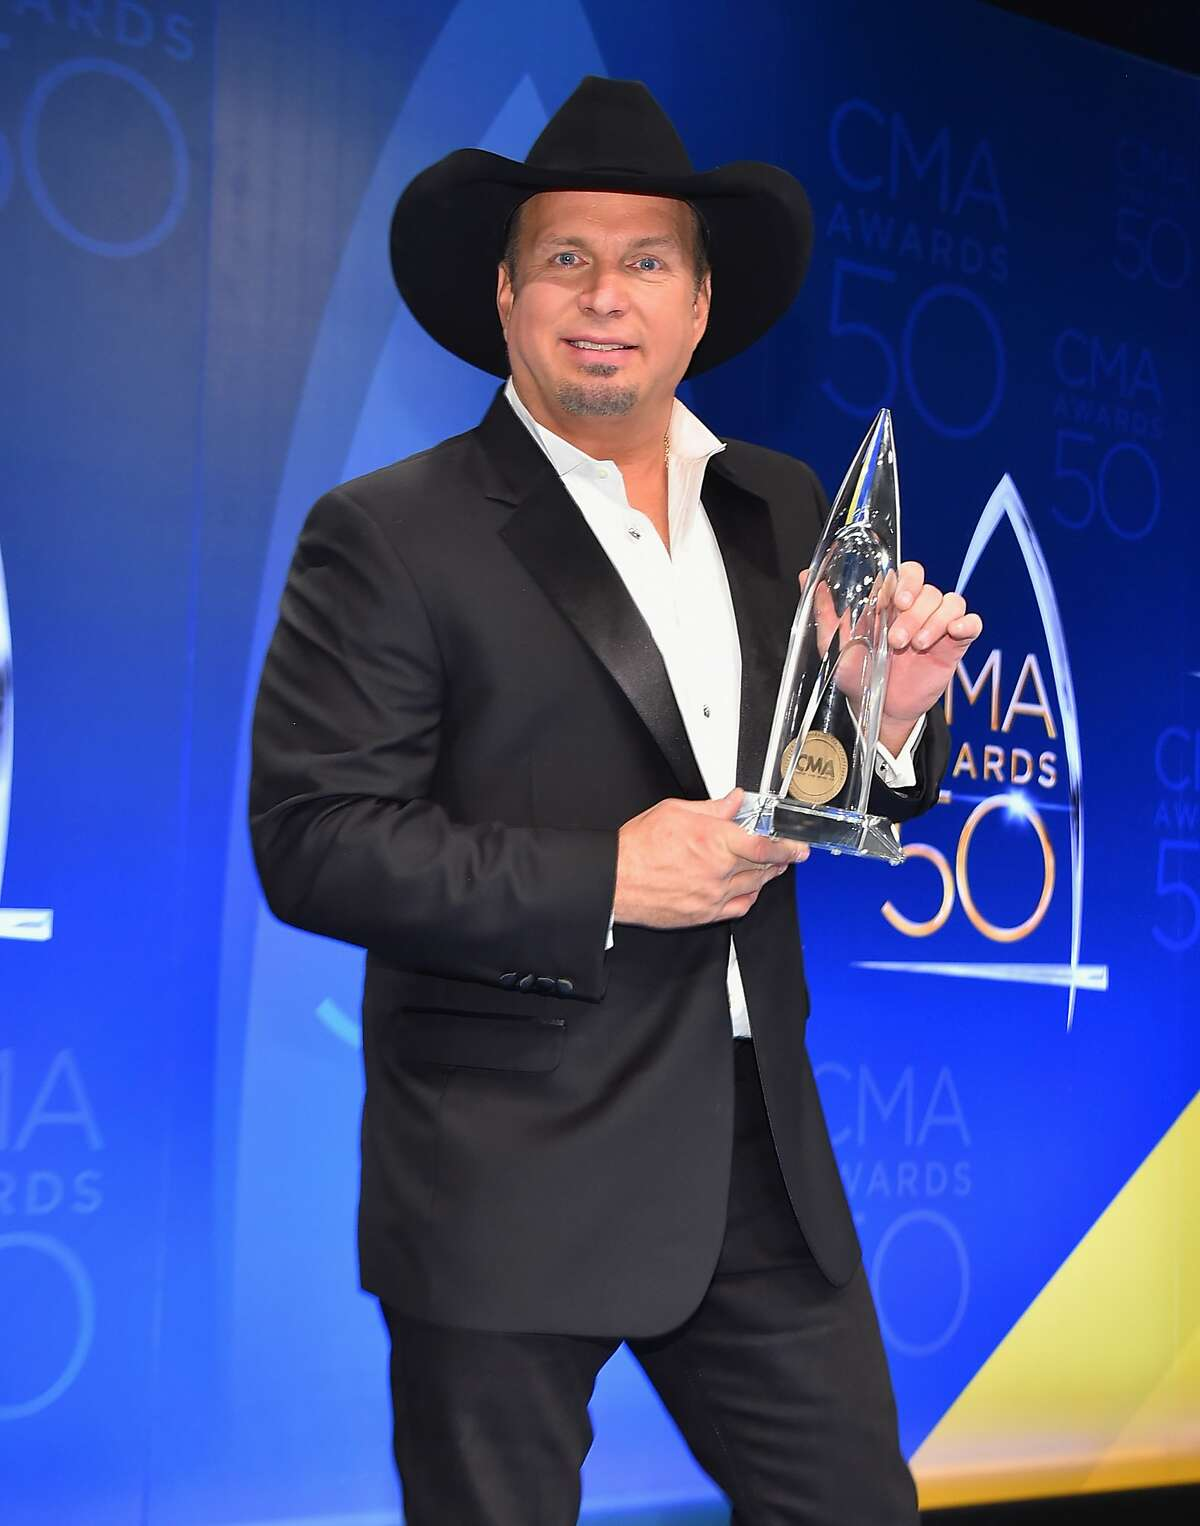 Garth Brooks The country star's name was floated often as an inauguration performer, but he recently confirmed he would not be playing the event.